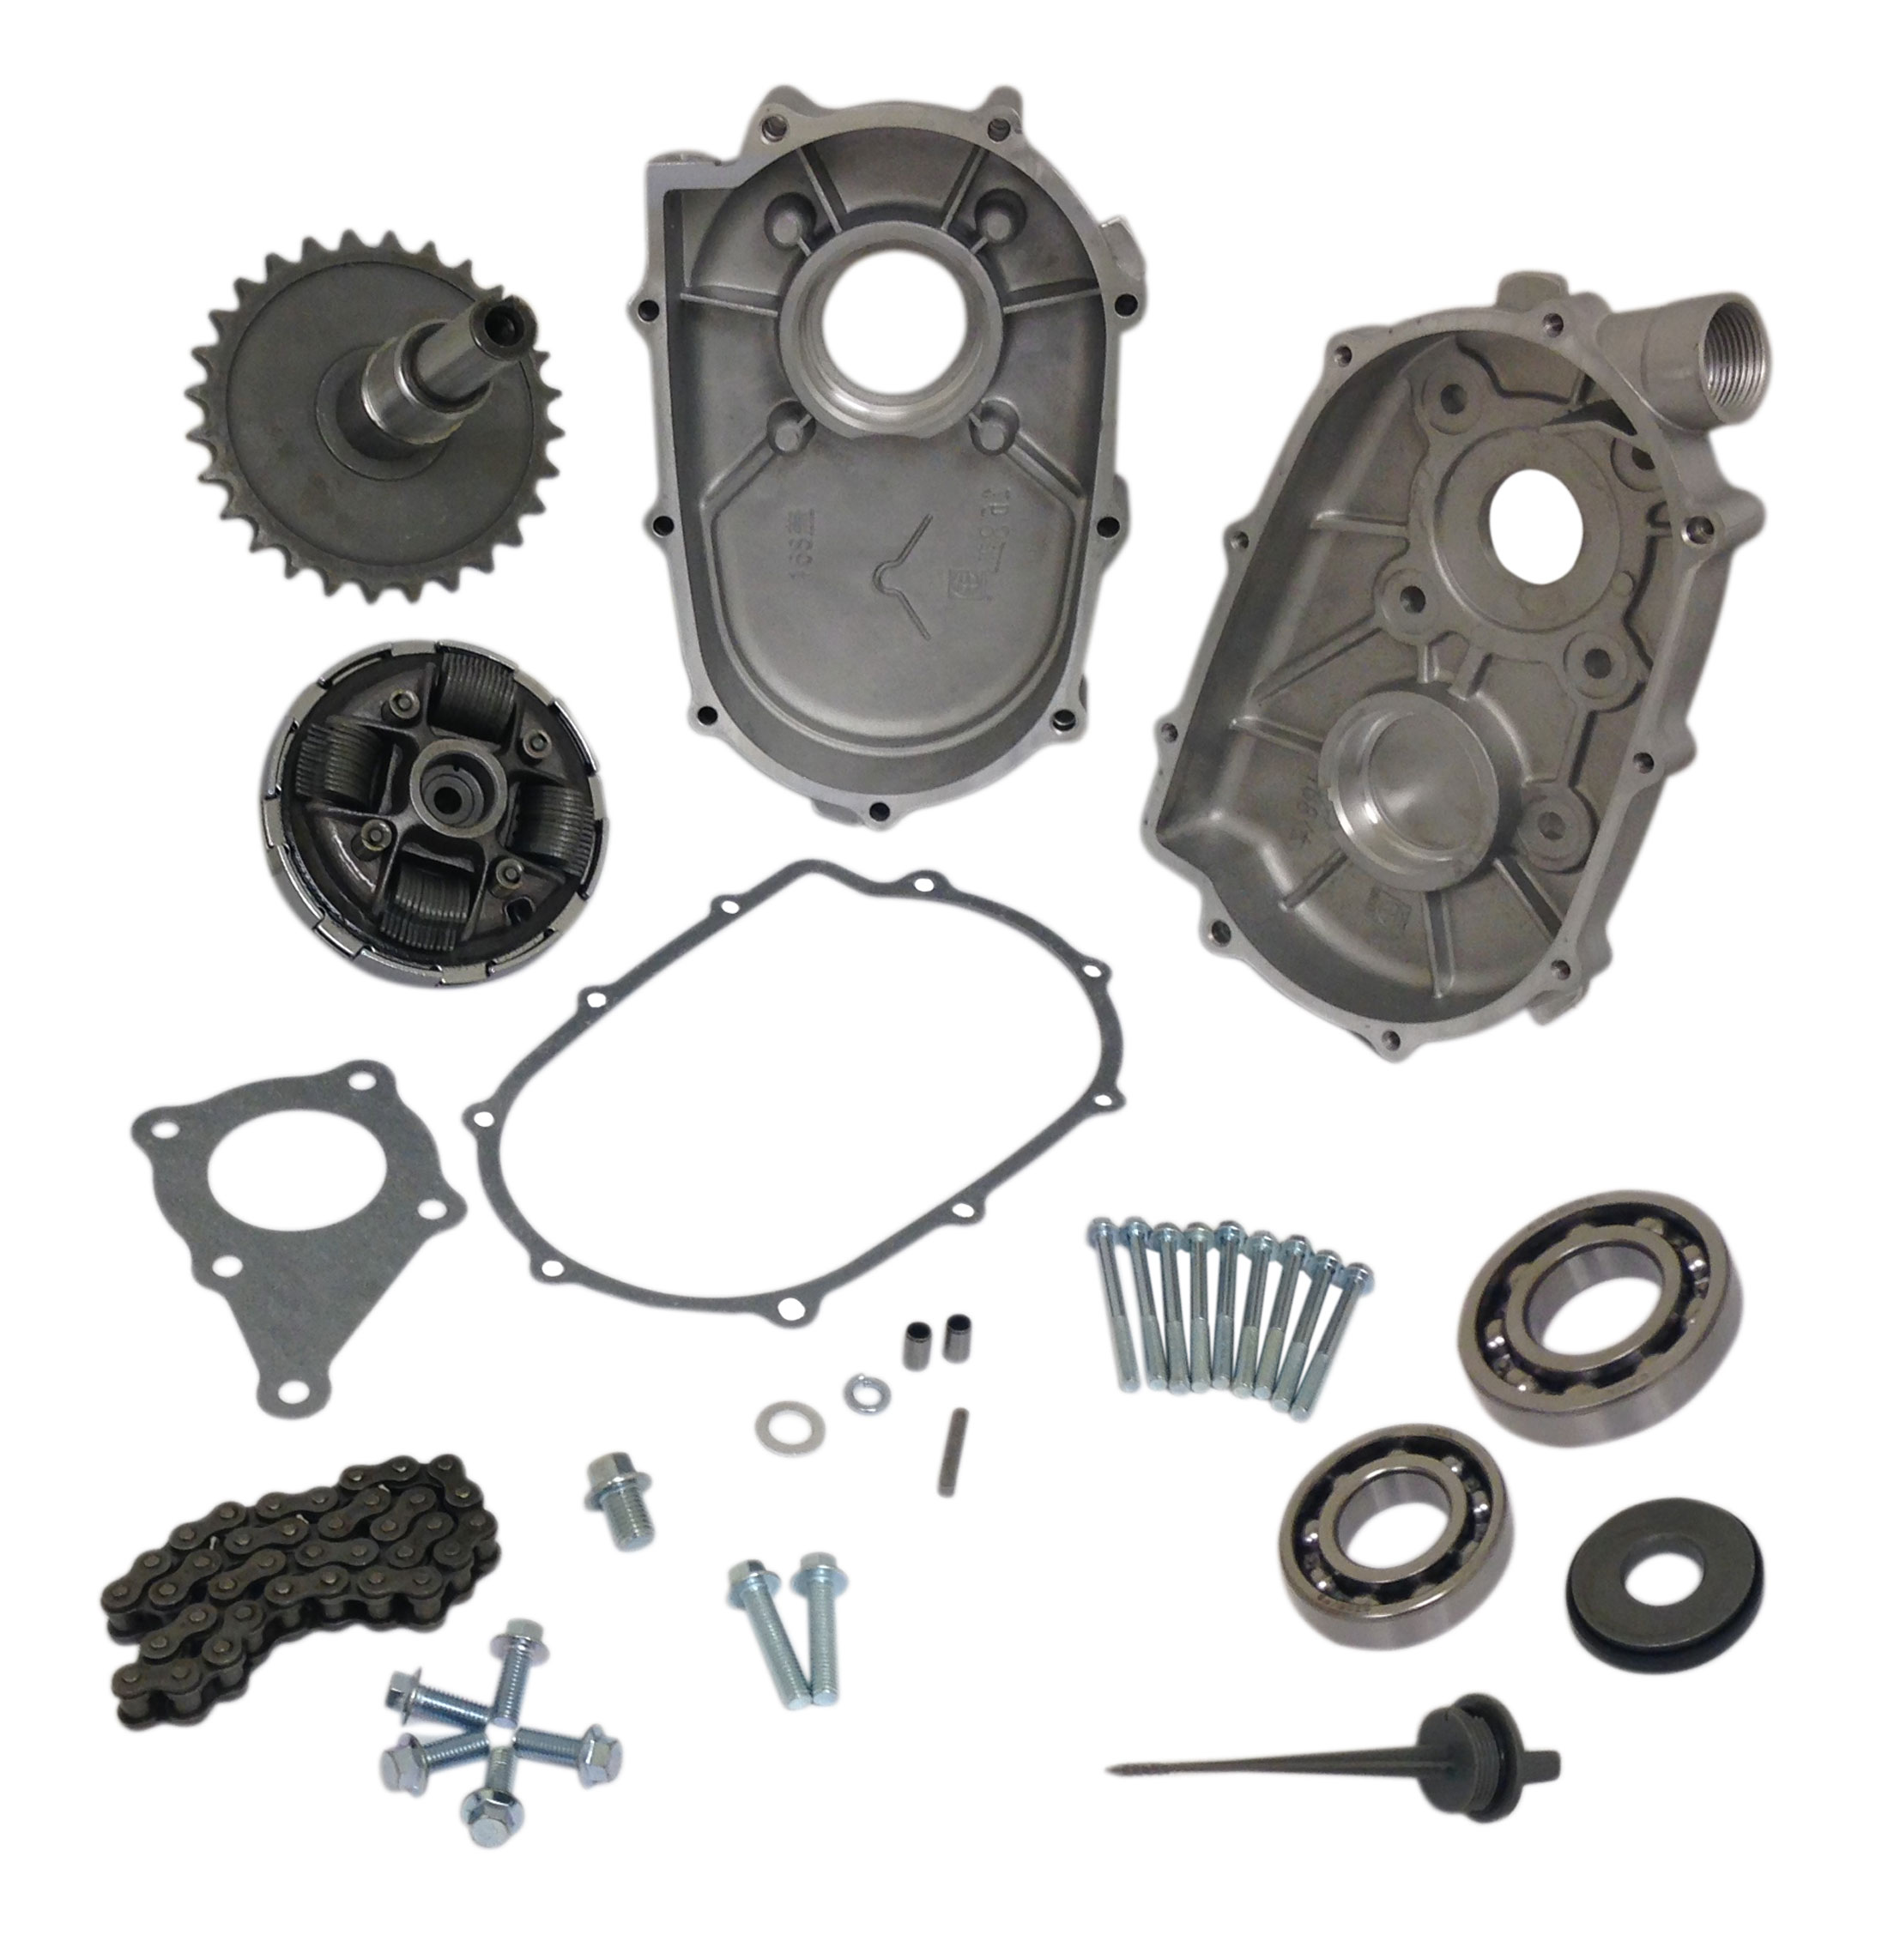 2:1 Reduction Gearbox Kit for Honda 6.5HP GX200 Engine (20mm ...